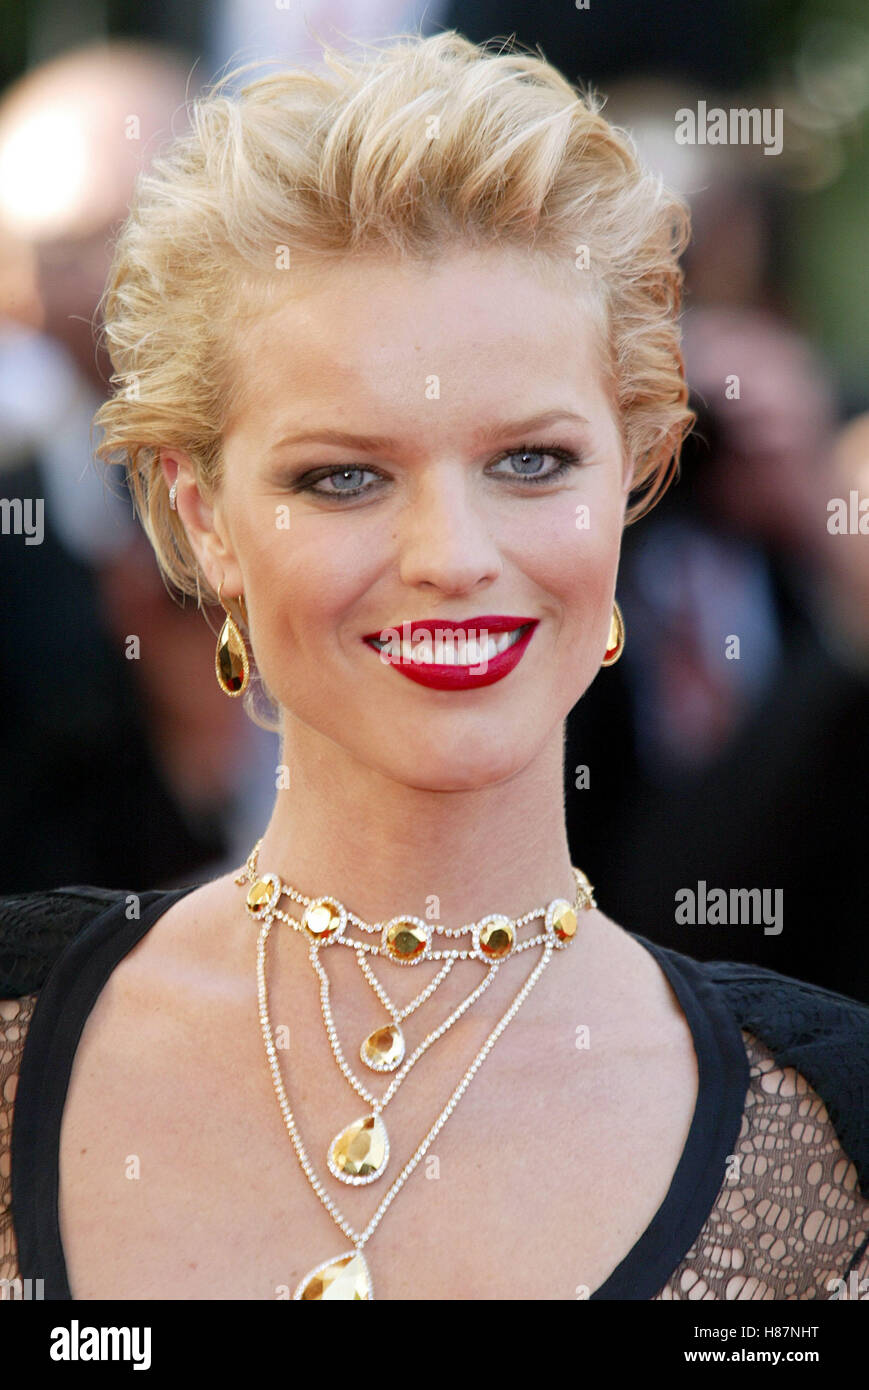 Eva Herzigova Cannes Film Festival Cannes France 19 May 2003 Stock Photo Alamy